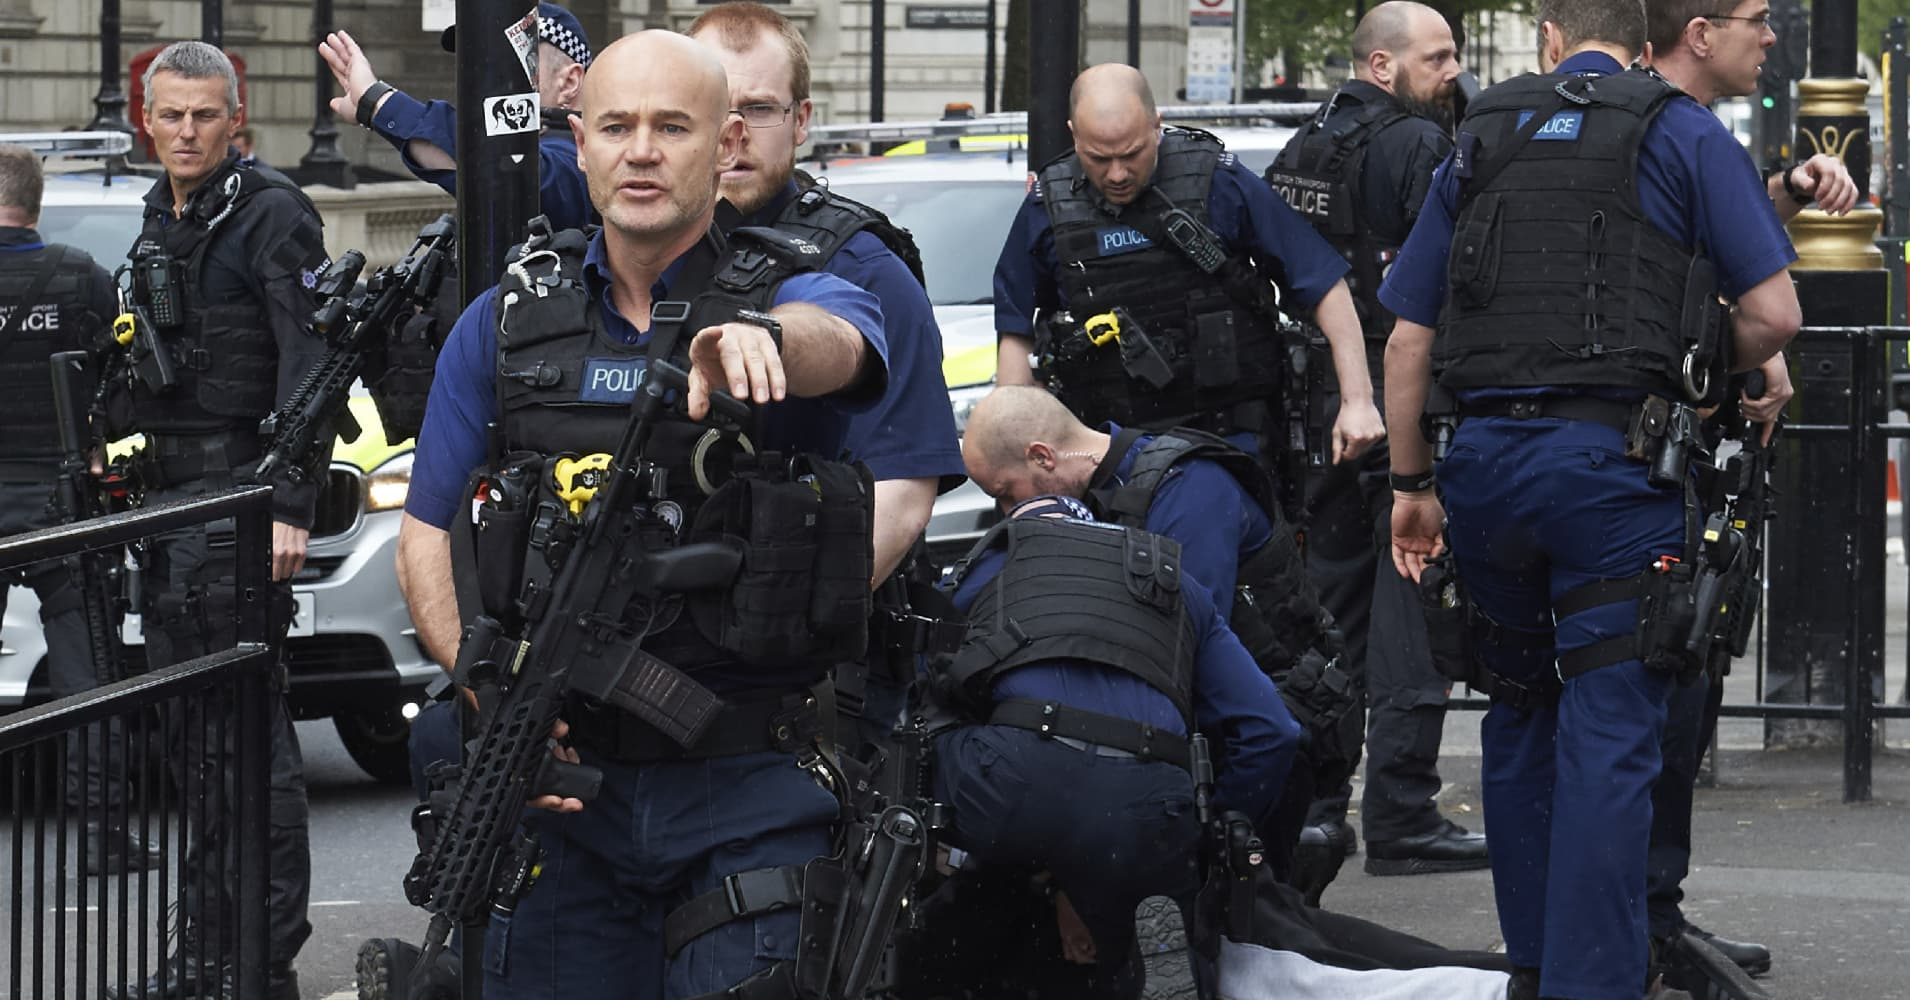 Uk Police Detain Man With Knives On Terror Charge Near Pm